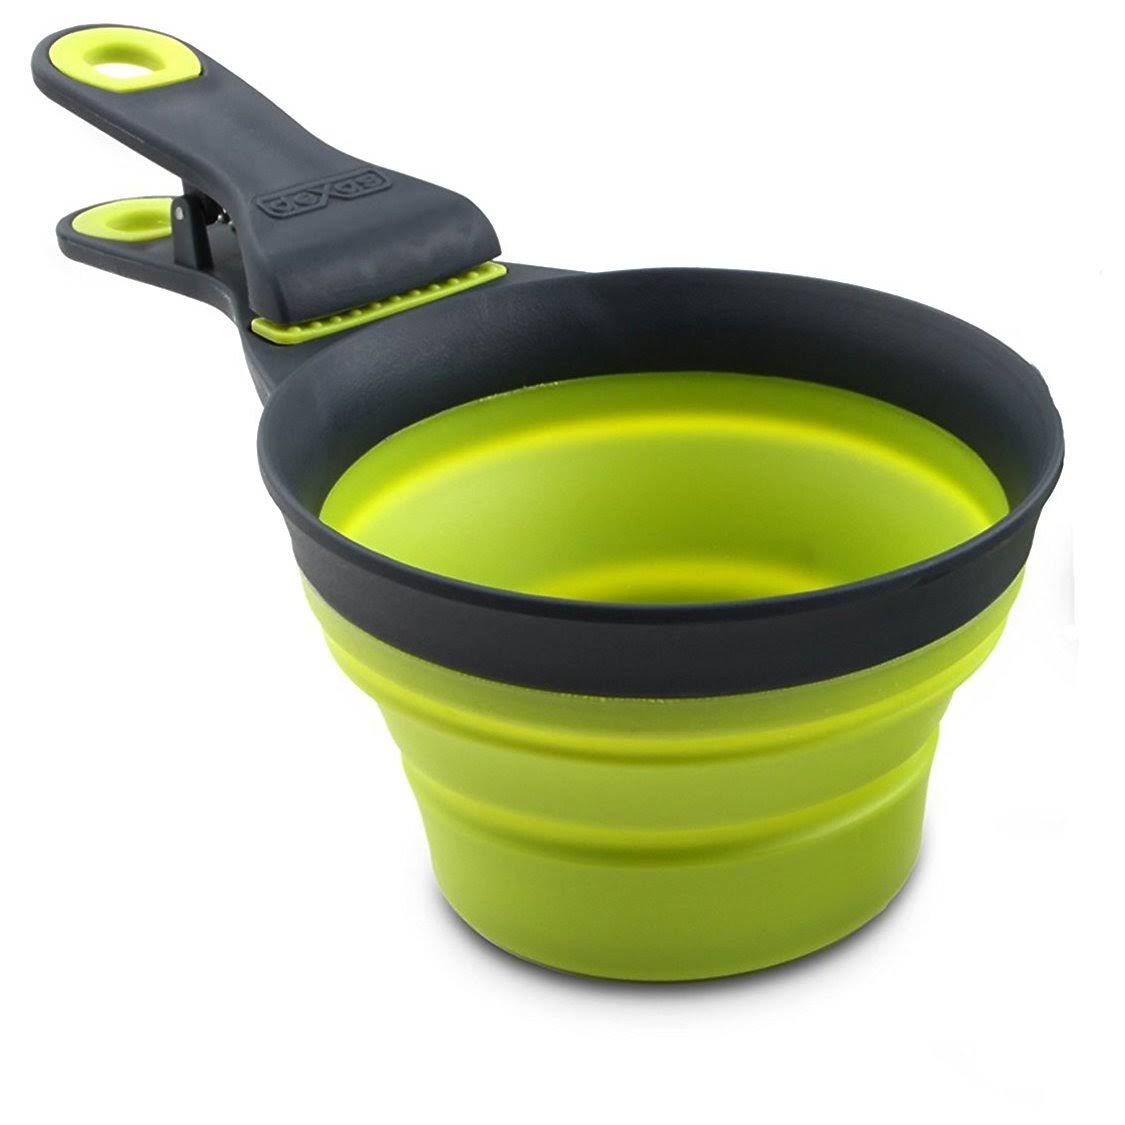 Dexas Popware for Pets Collapsible KlipScoop Pet Food Scoop - Gray/Green